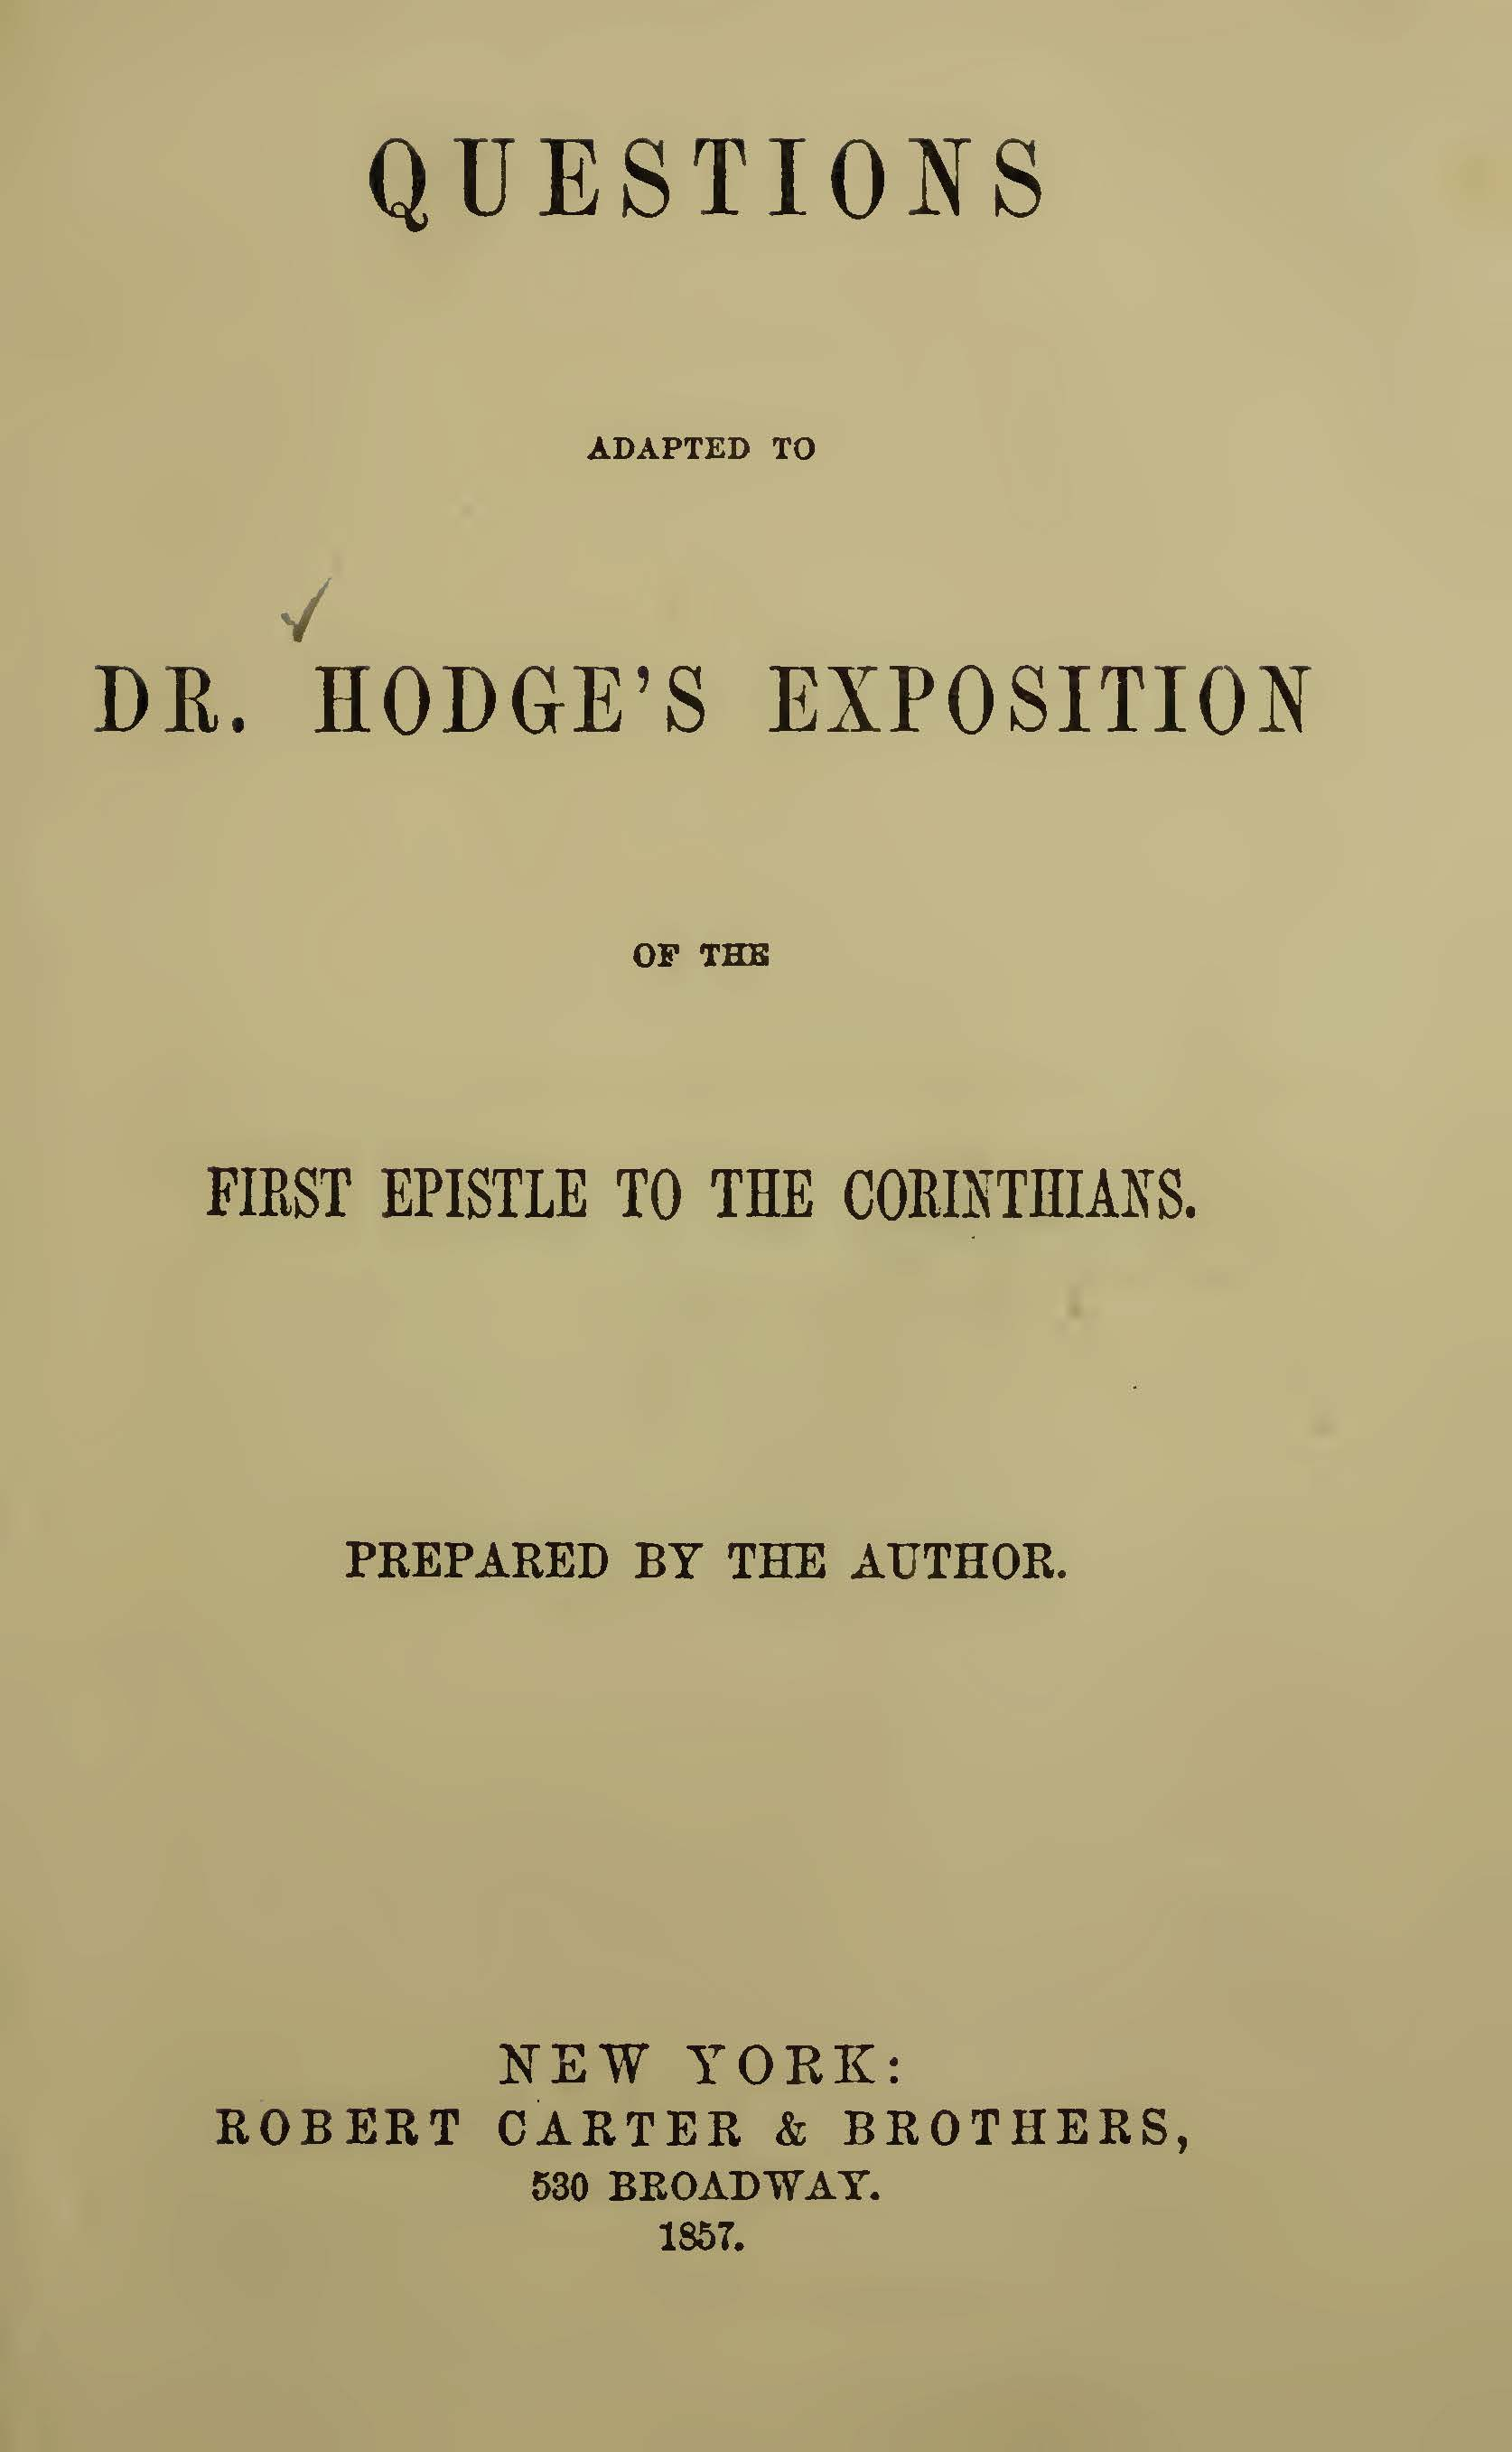 Hodge, Charles, Questions adapted to Dr Hodge's Exposition of the First Epistle to the Corinthians Title Page.jpg